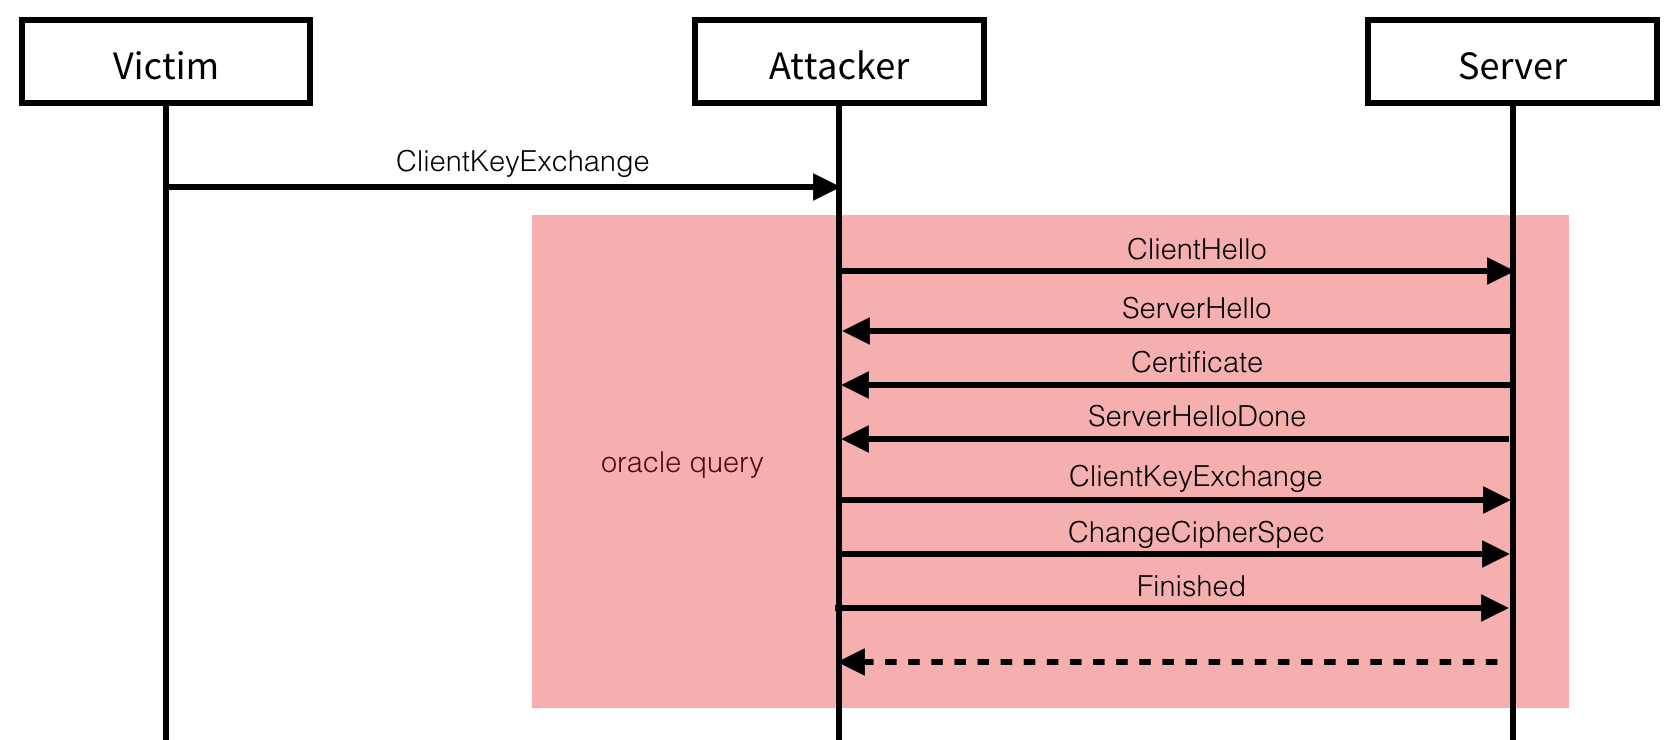 Downgrade Attack on TLS 1 3 and Vulnerabilities in Major TLS Libraries